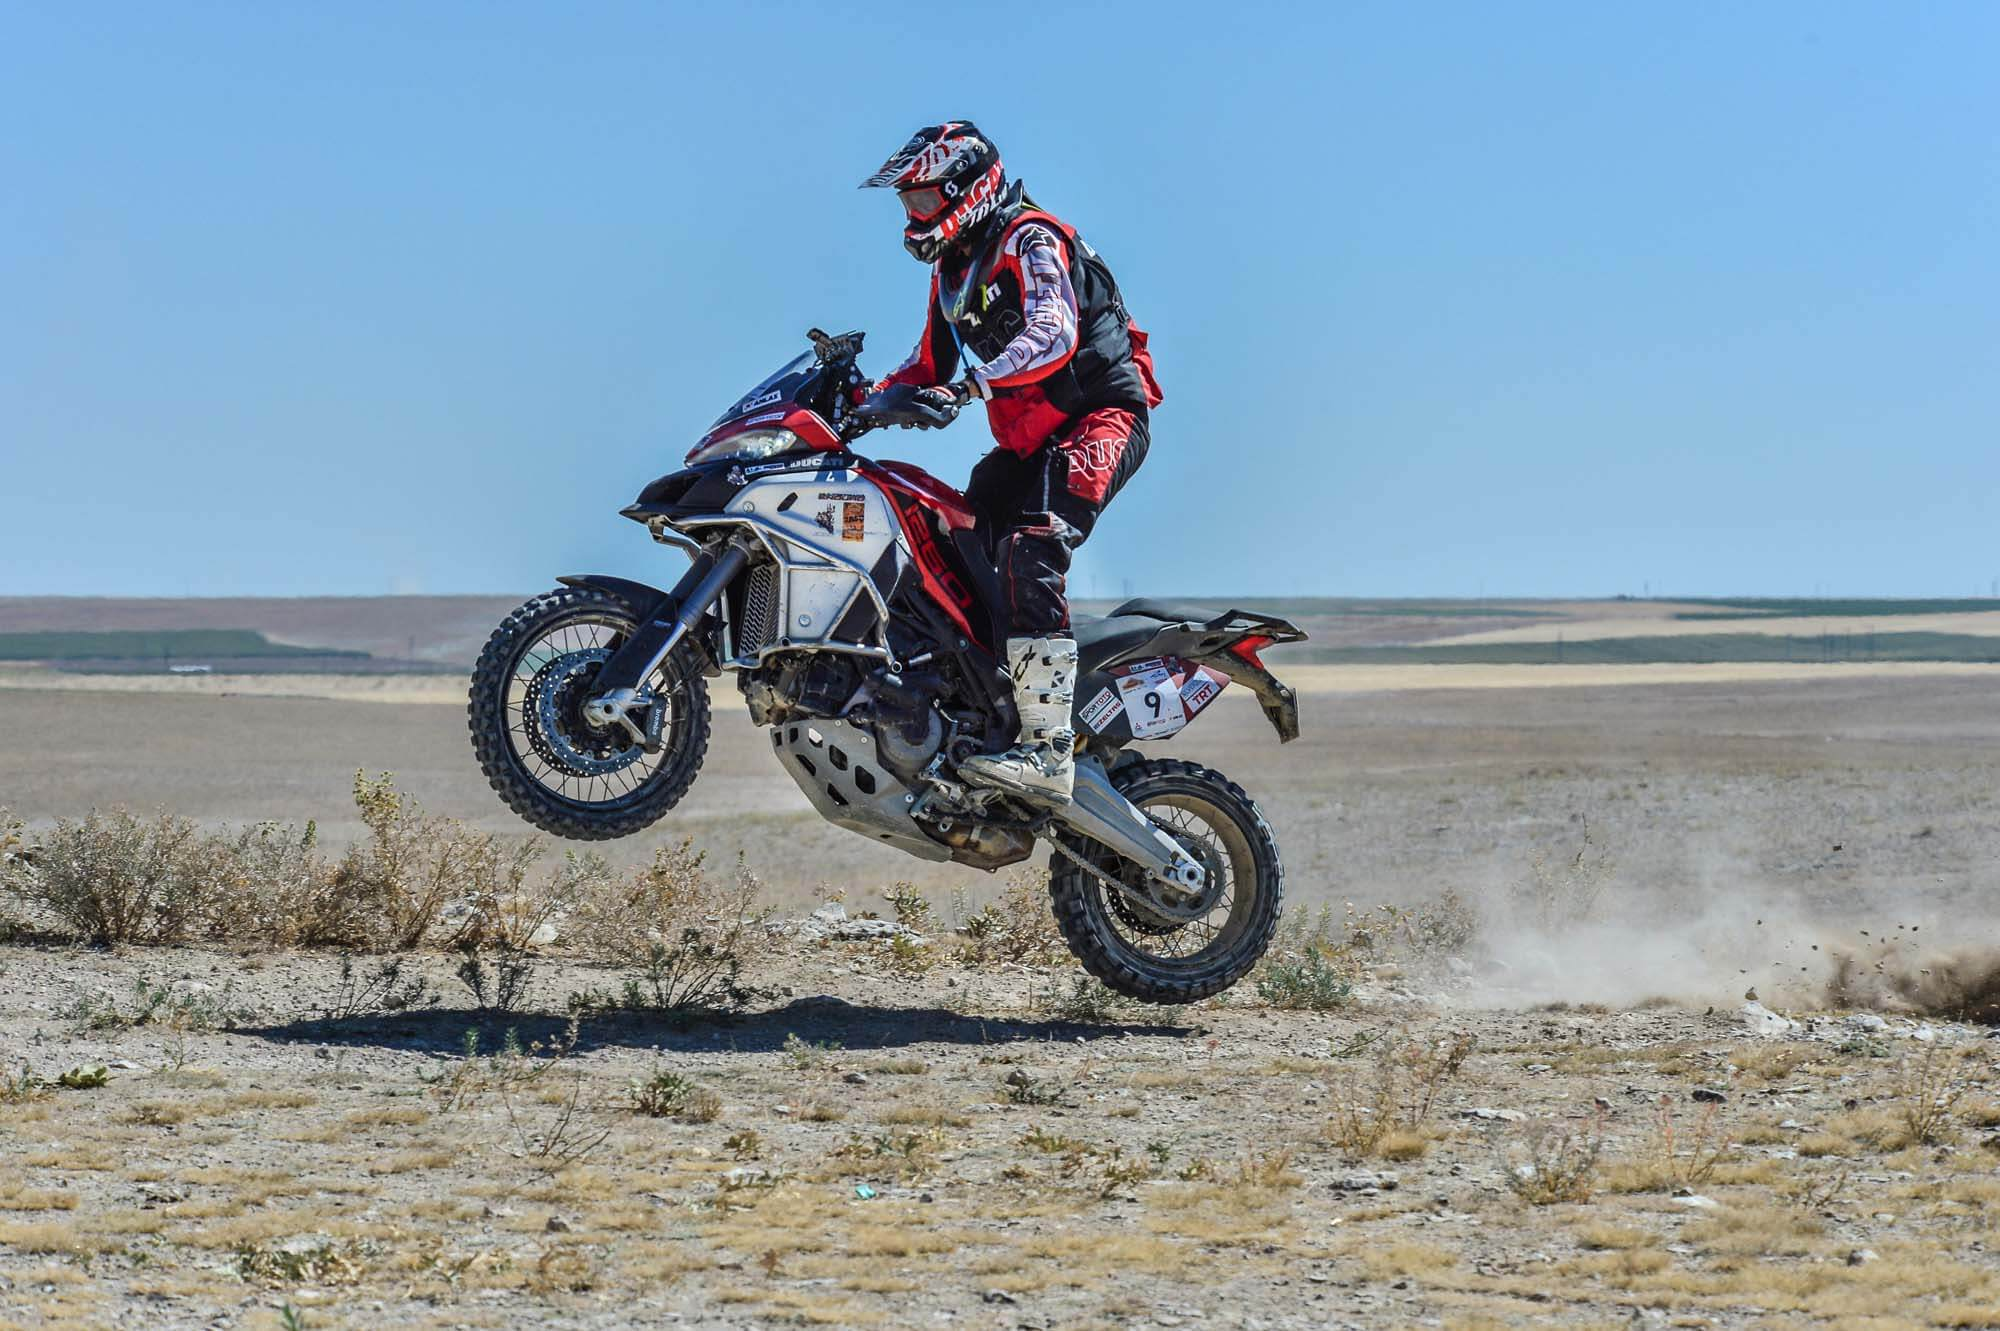 Ducati Multistrada 1260 Rnduro rajd rally adventure